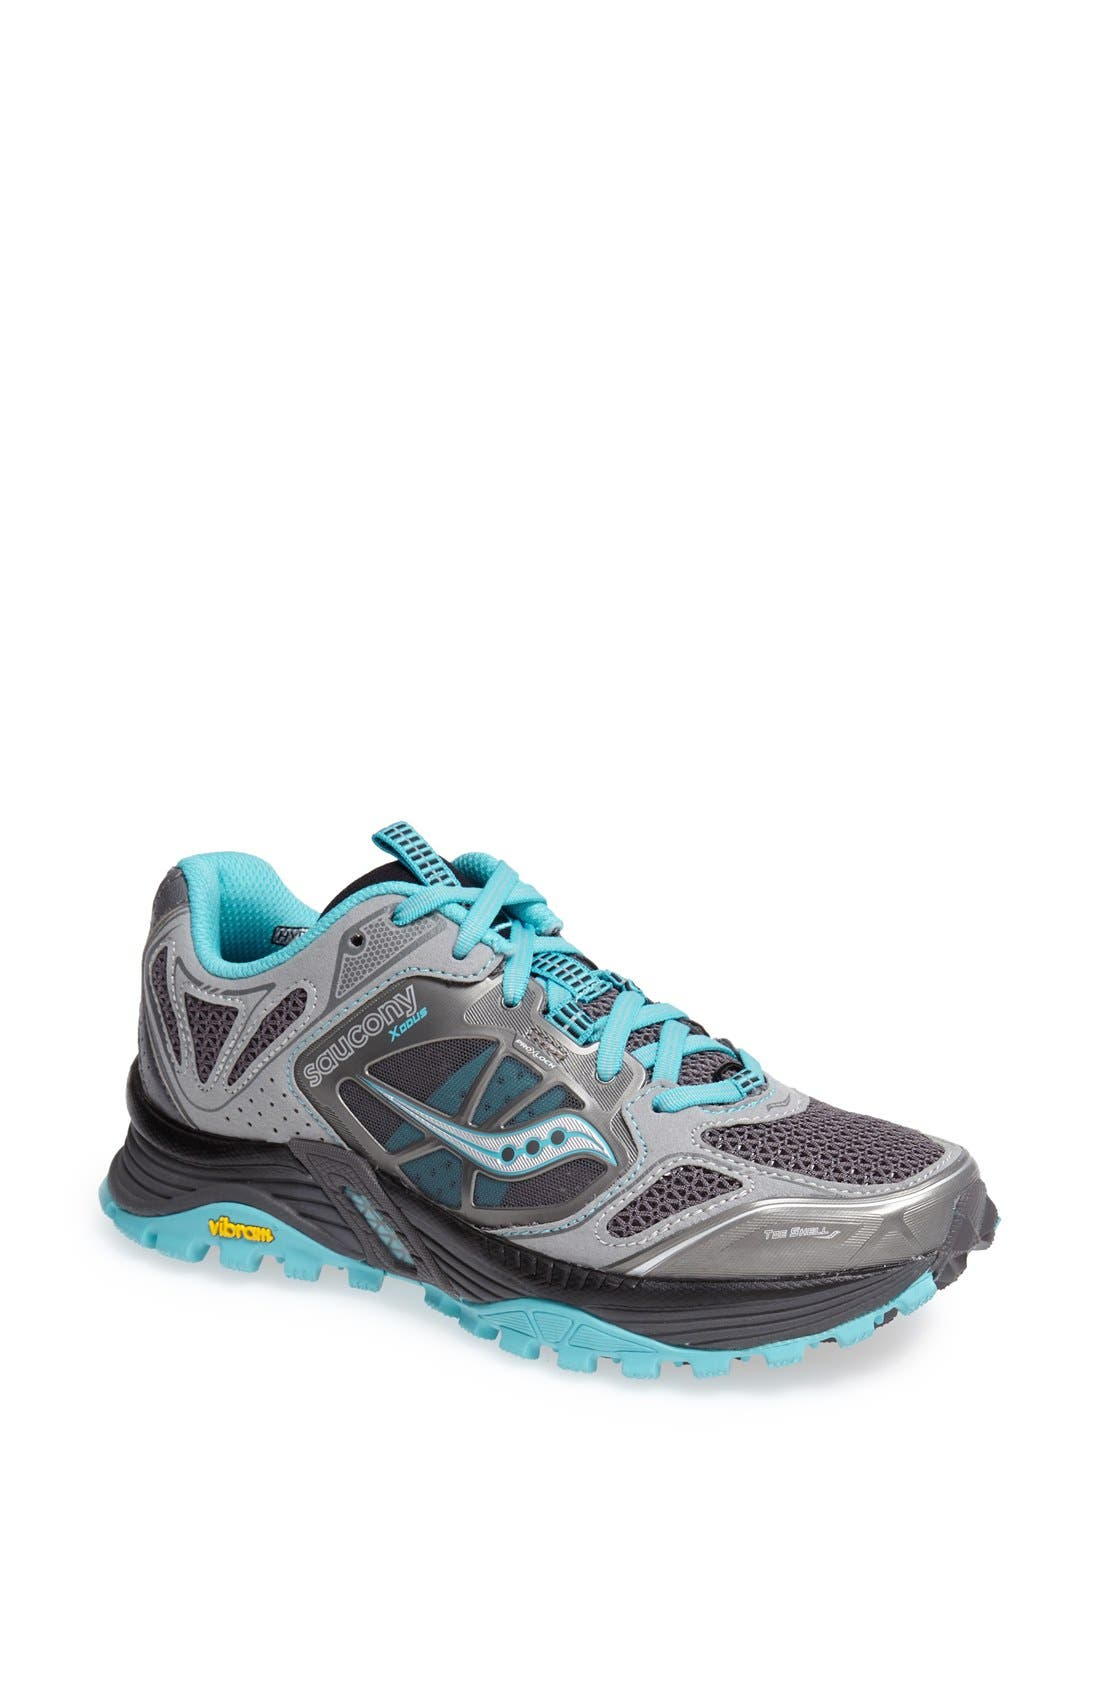 Alternate Image 1 Selected - Saucony 'Xodus 4.0' Trail Running Shoe (Women)